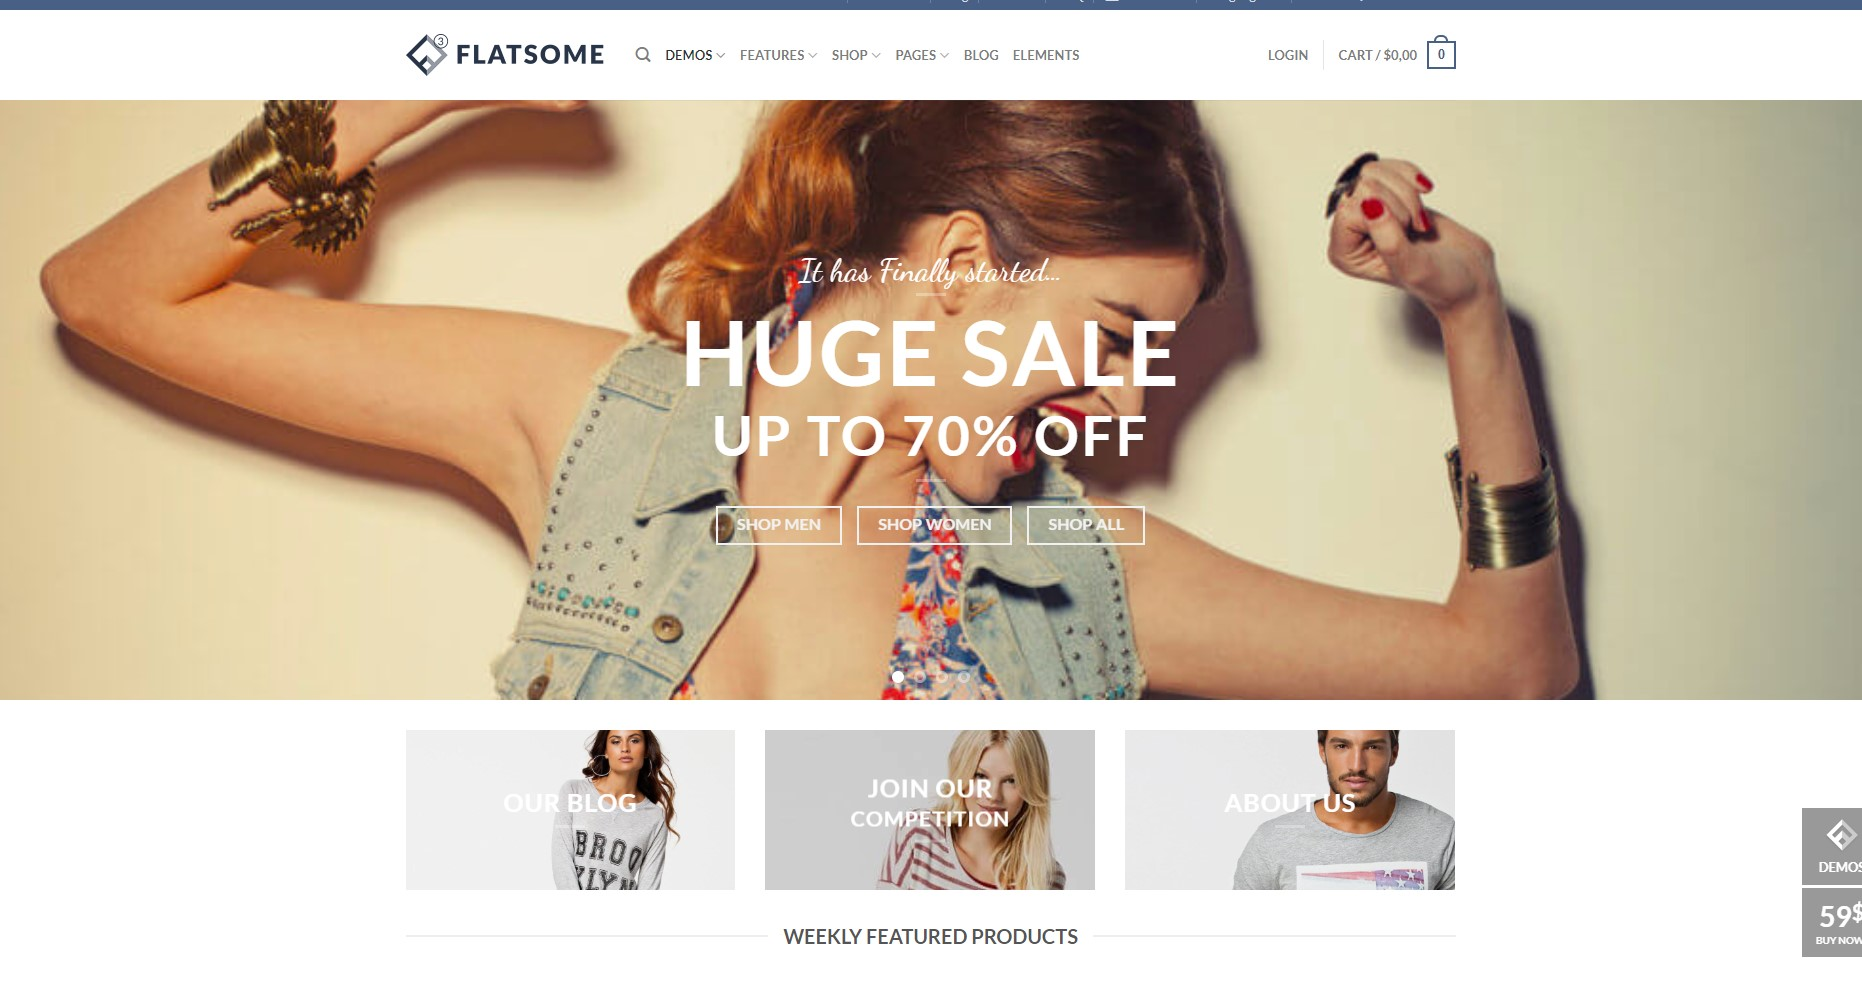 Flatsome Minimalist WordPress Theme